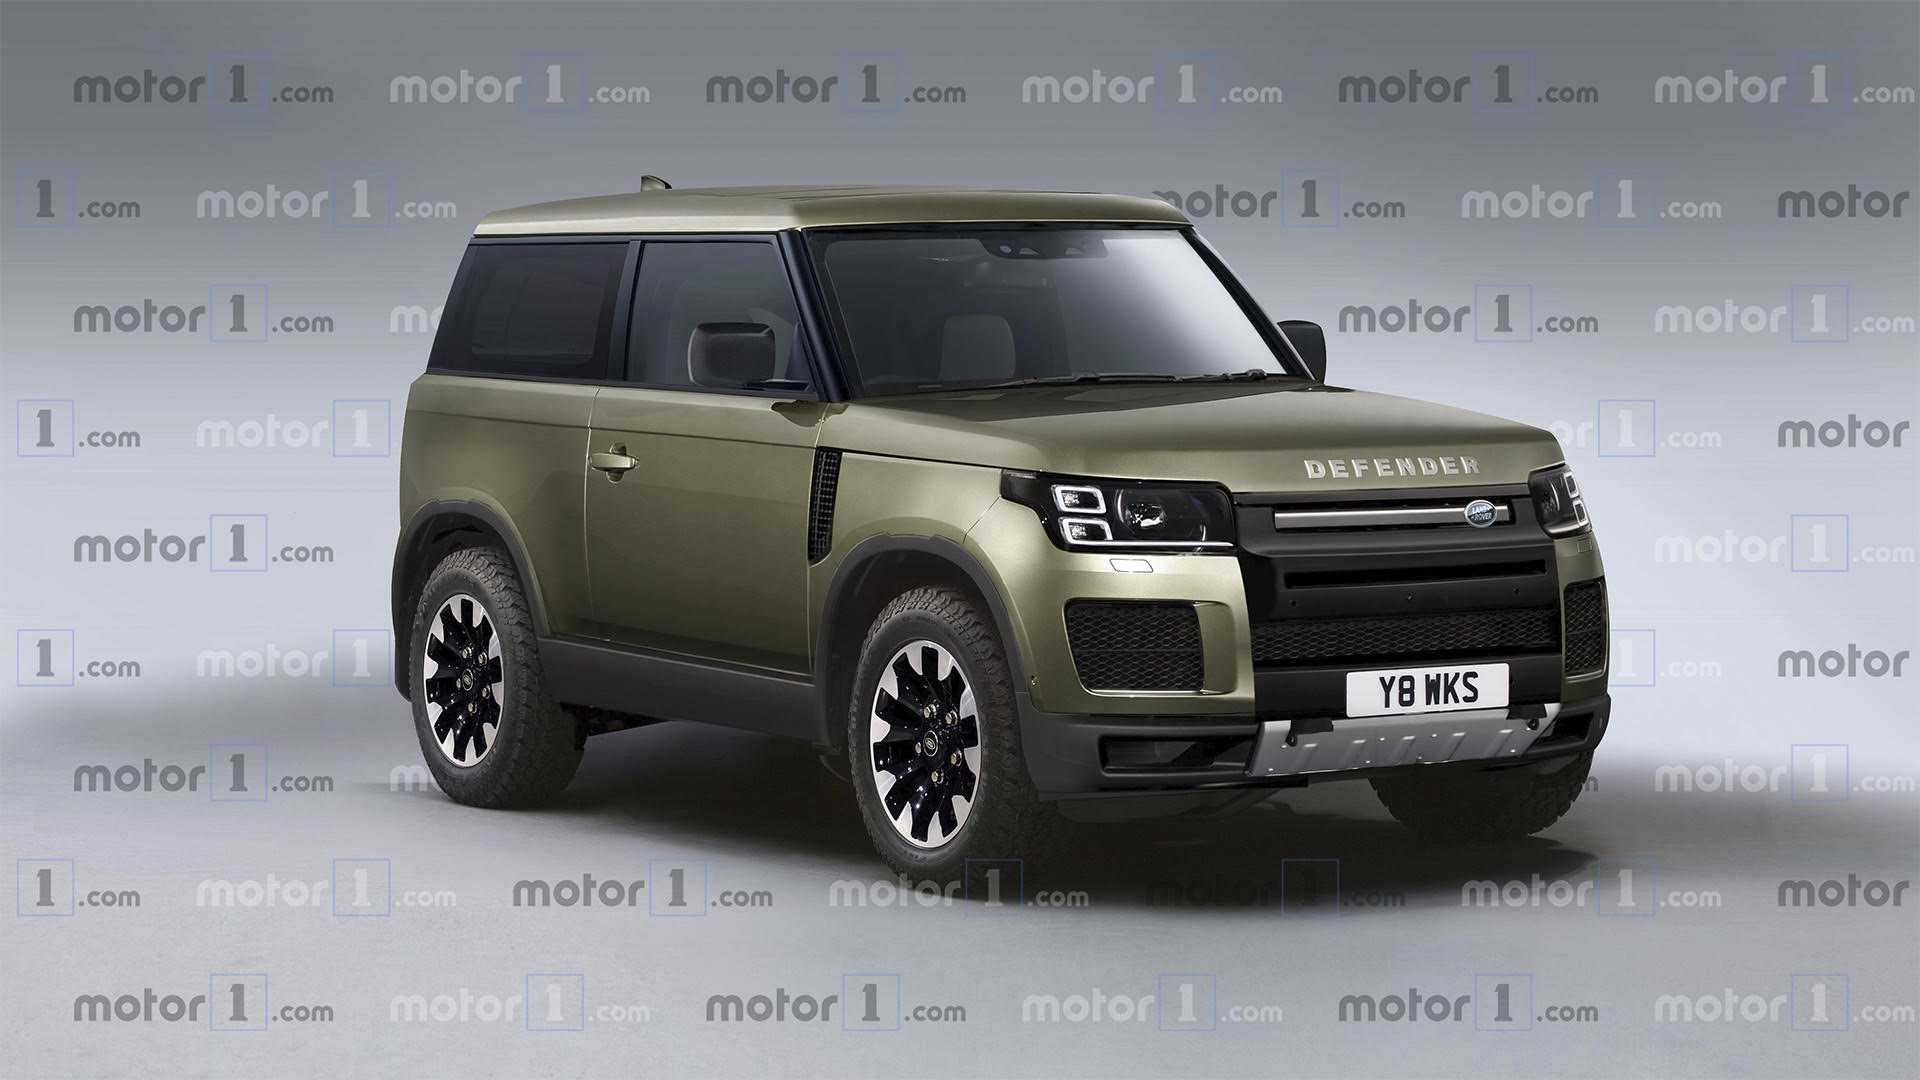 2020 Land Rover Defender: News, Design, Release, Price >> New Land Rover Defender Takes Off All Camo In Exclusive